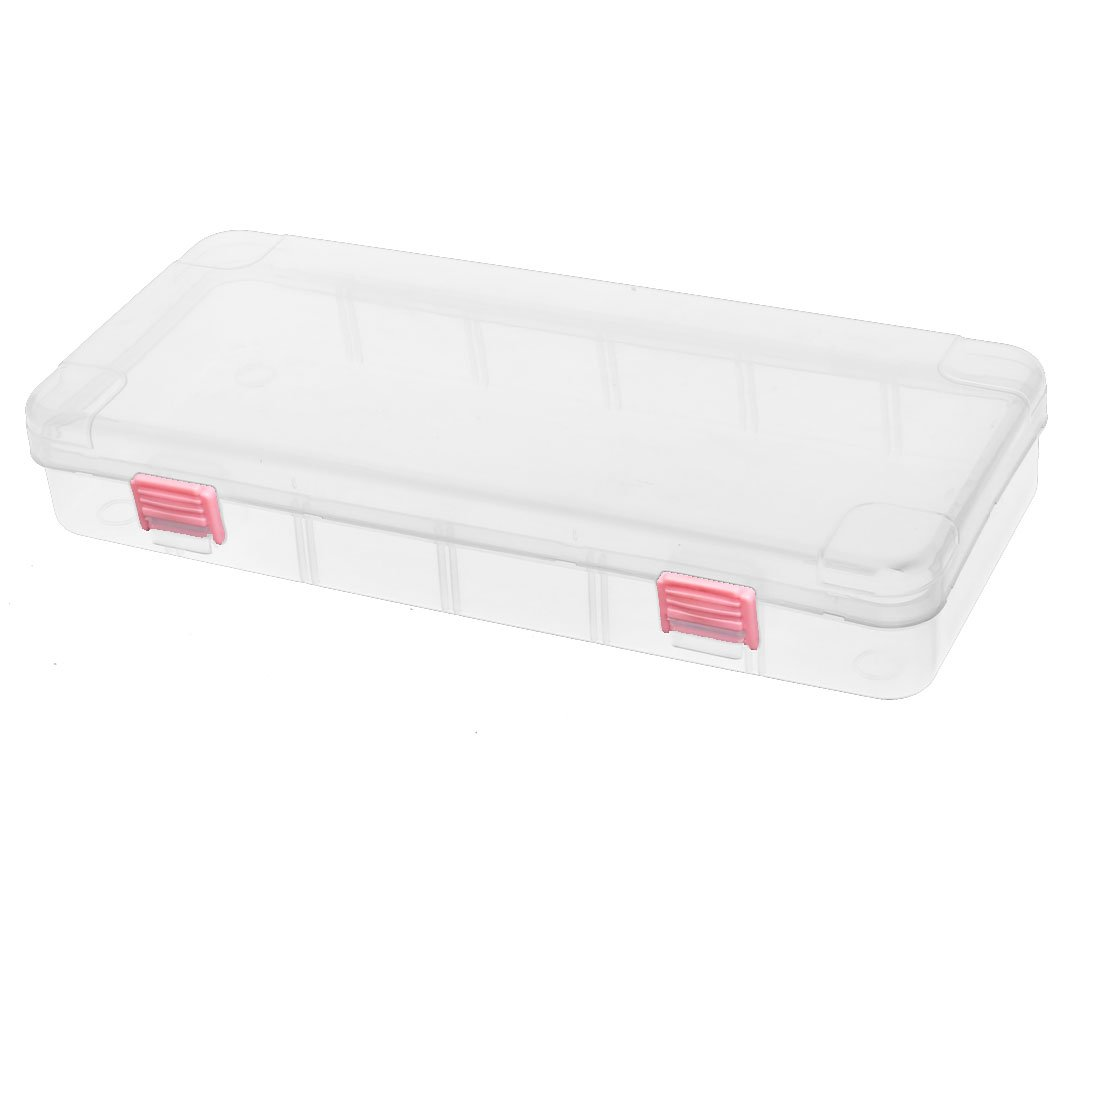 uxcell 270mmx117mmx45mm Jewelry Earring Bead Organizer Container Storage Case Clear